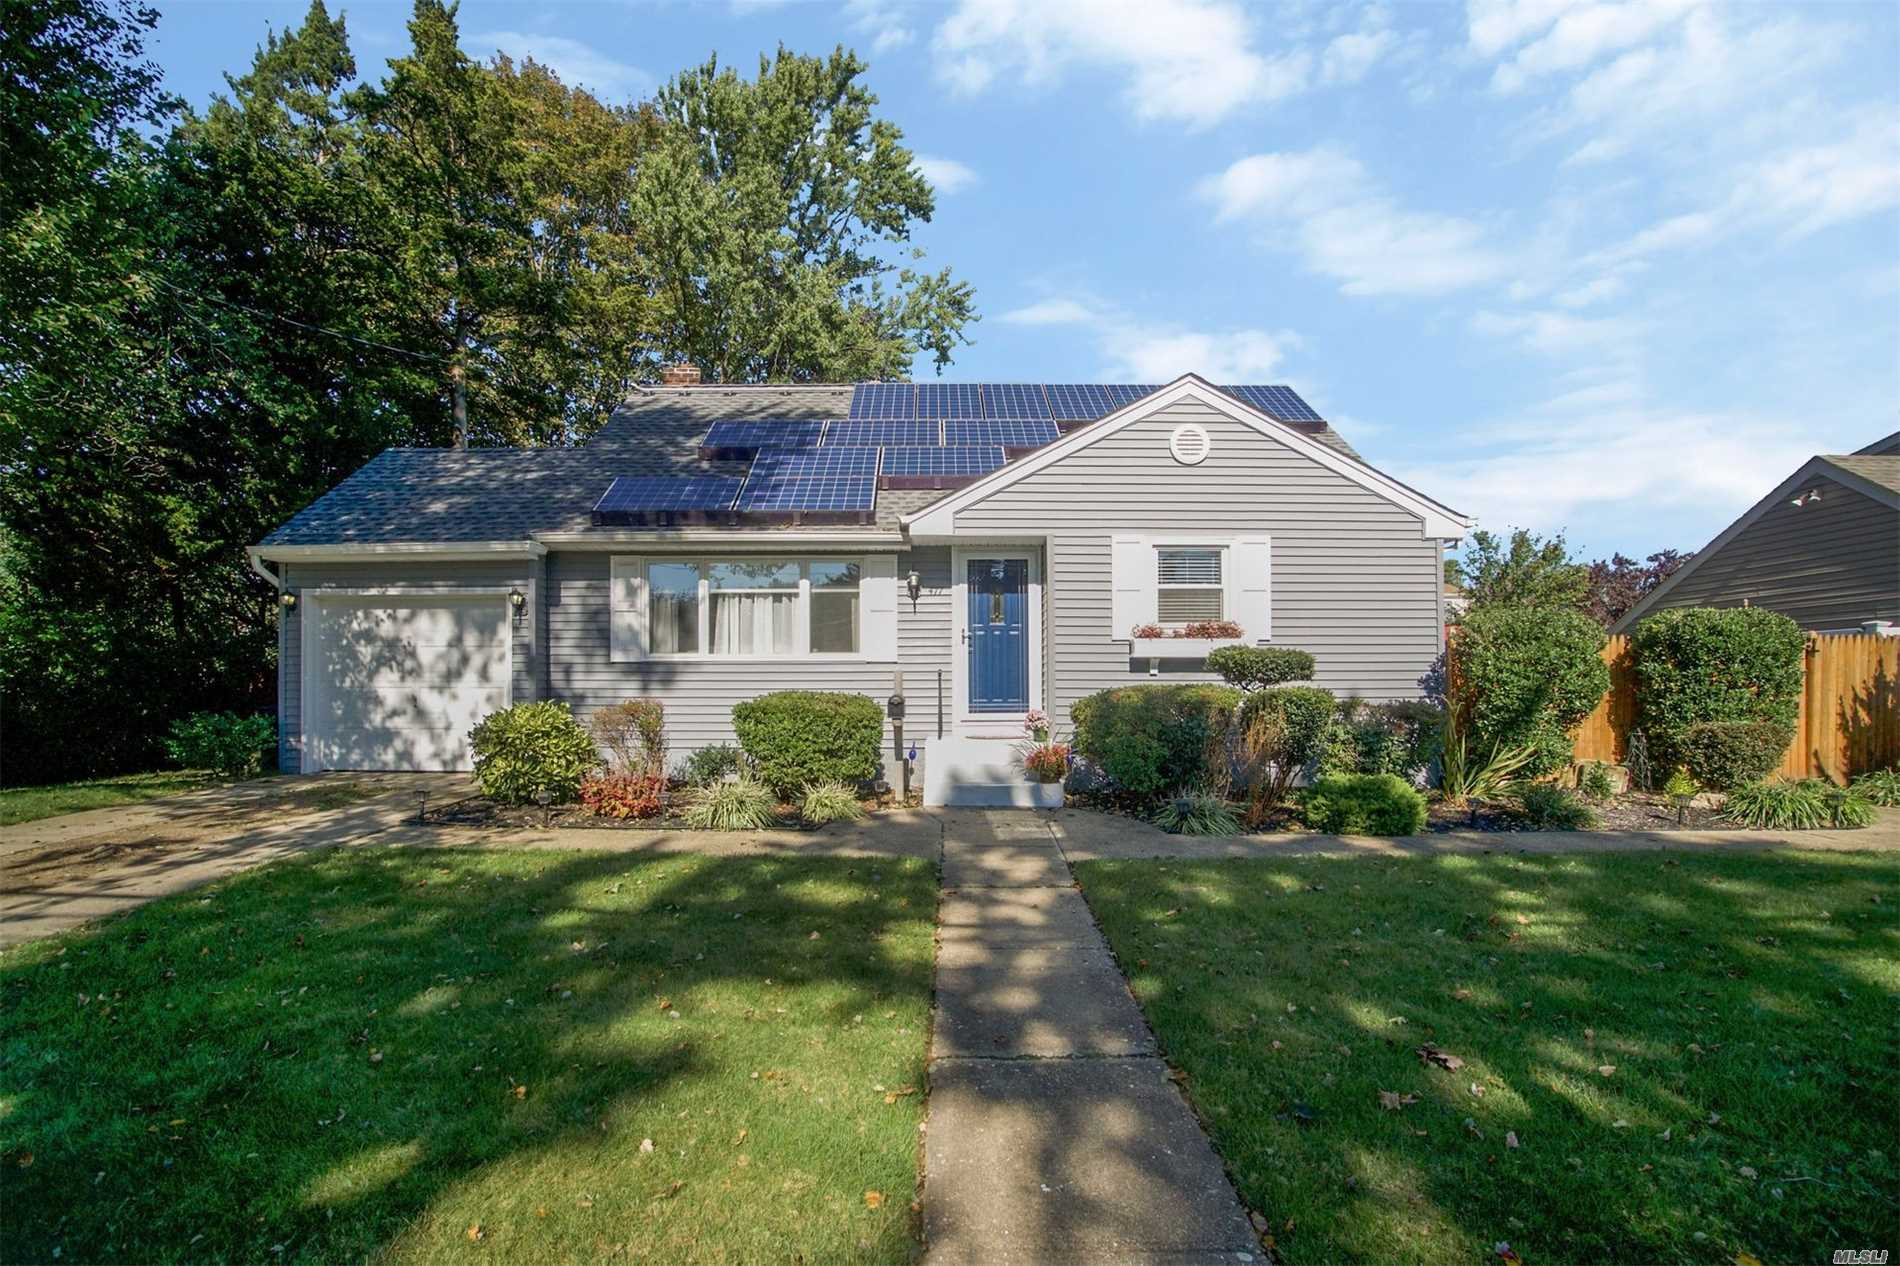 Pristine 4 Bedroom Cape On Quiet Street. Move Right Into This Totally Renovated Home. Gas Line In Home For Easy Heat Conversion. Hardwood Floors, Renovated Kitchen And Bath. Spacious Private Yard, Perfect For Entertaining. Full Bsmt With High Ceilings!